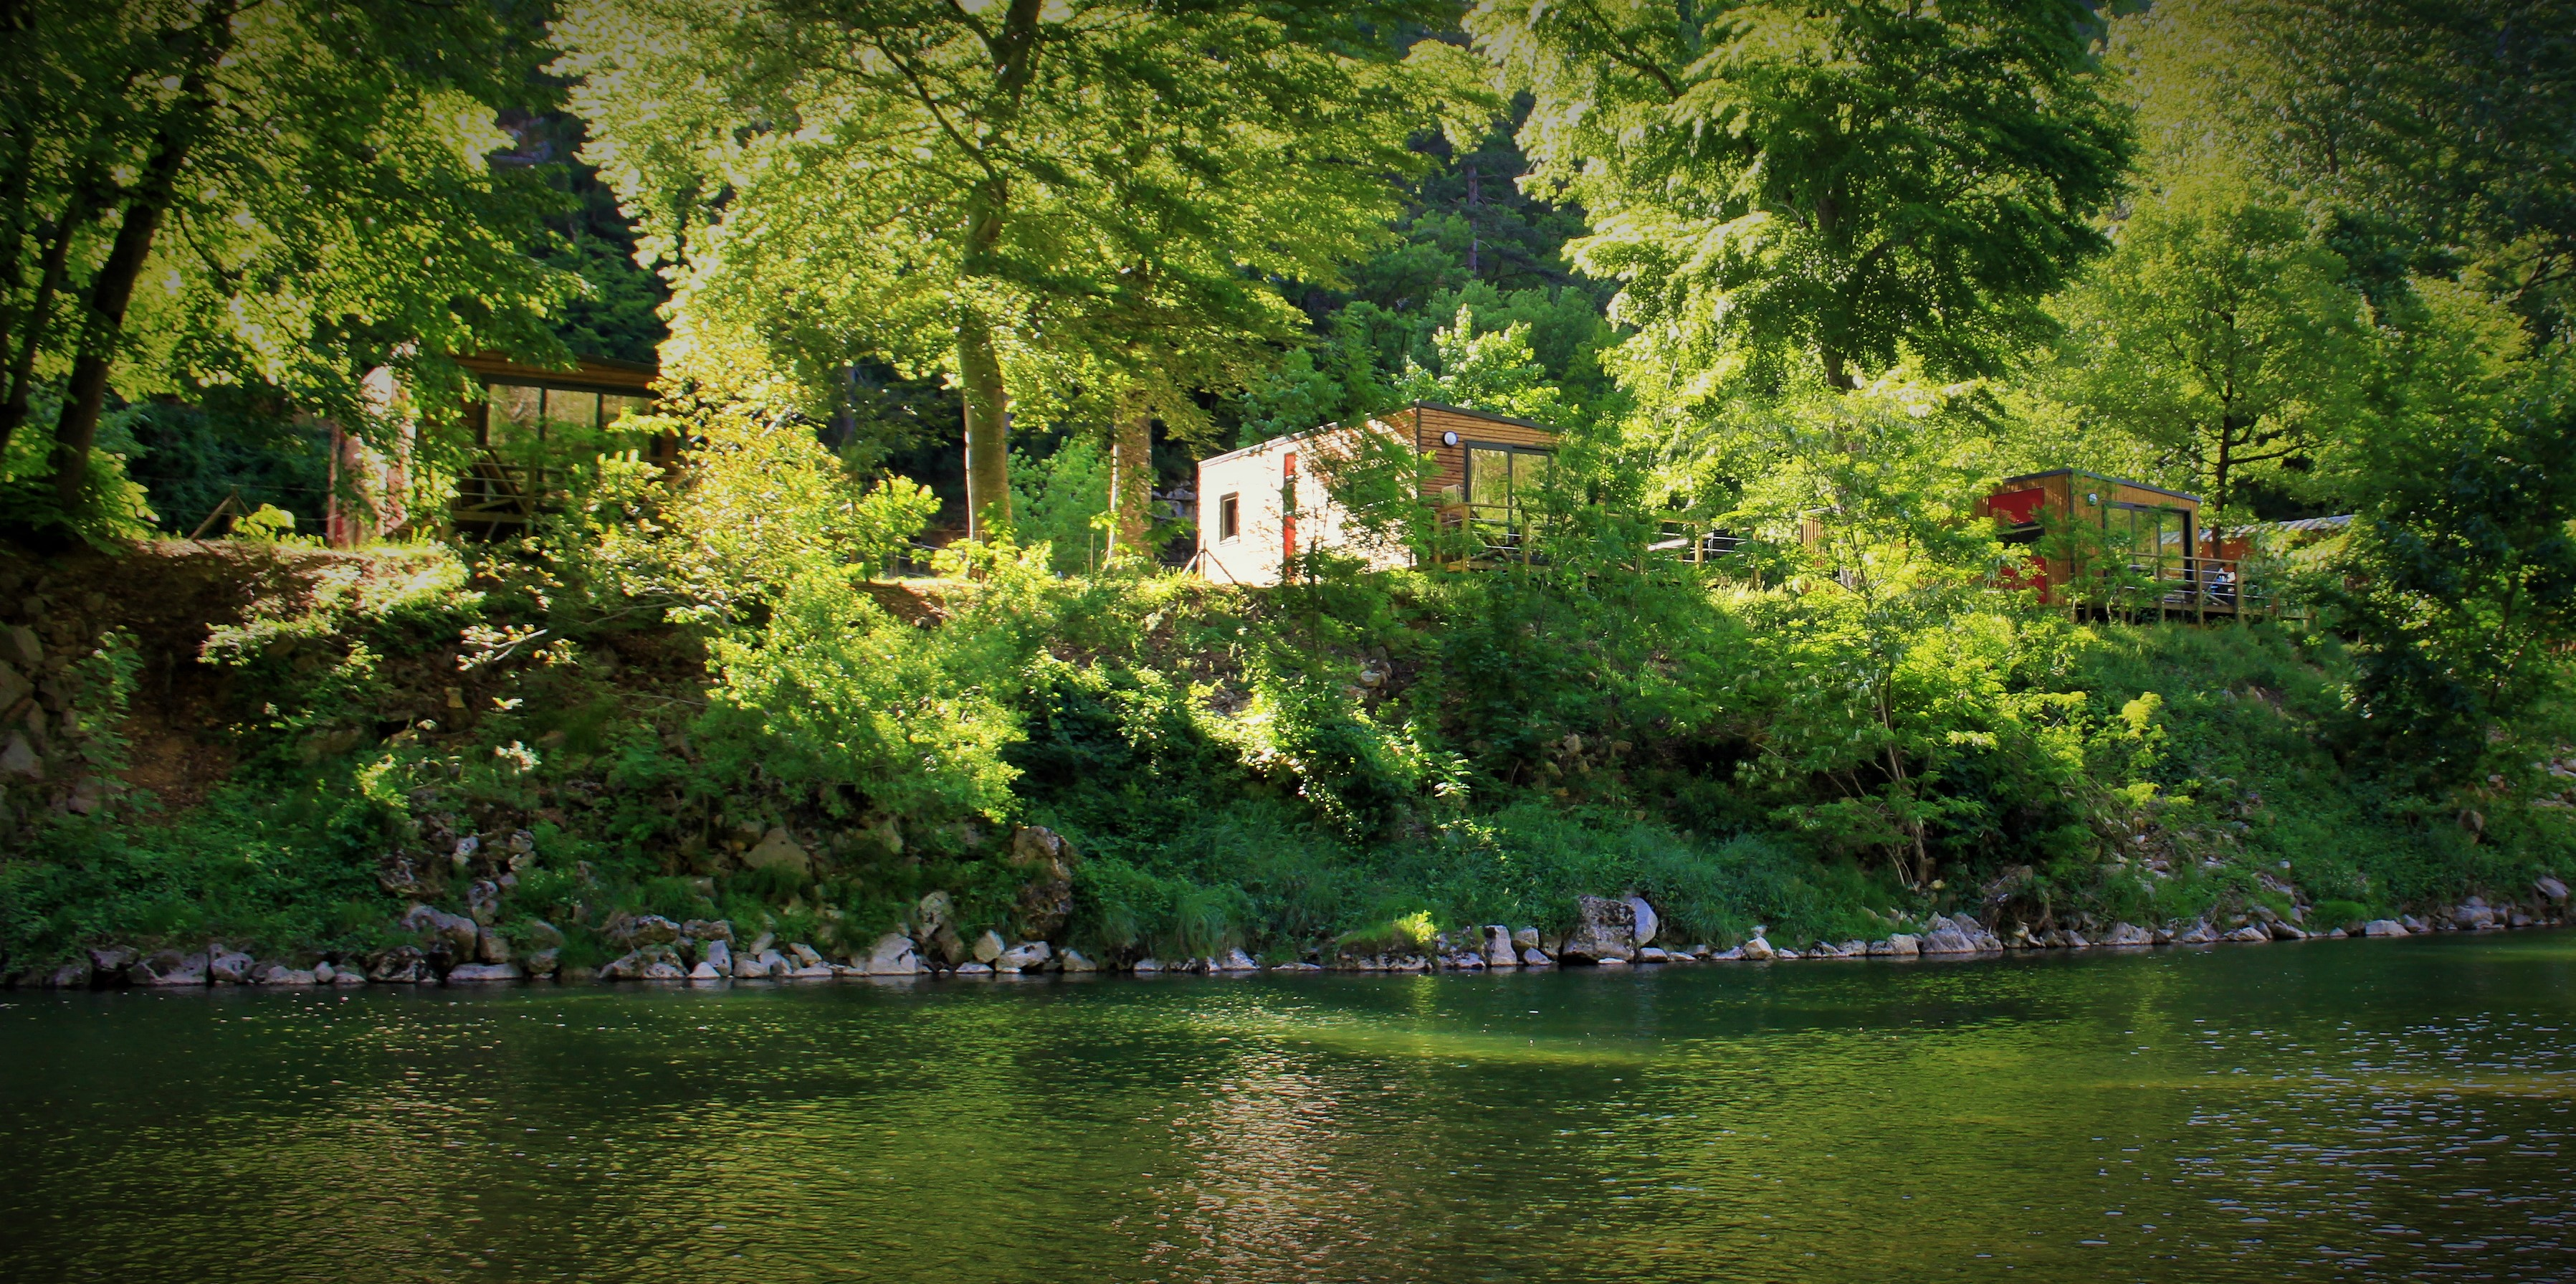 Camping cevennes riviere